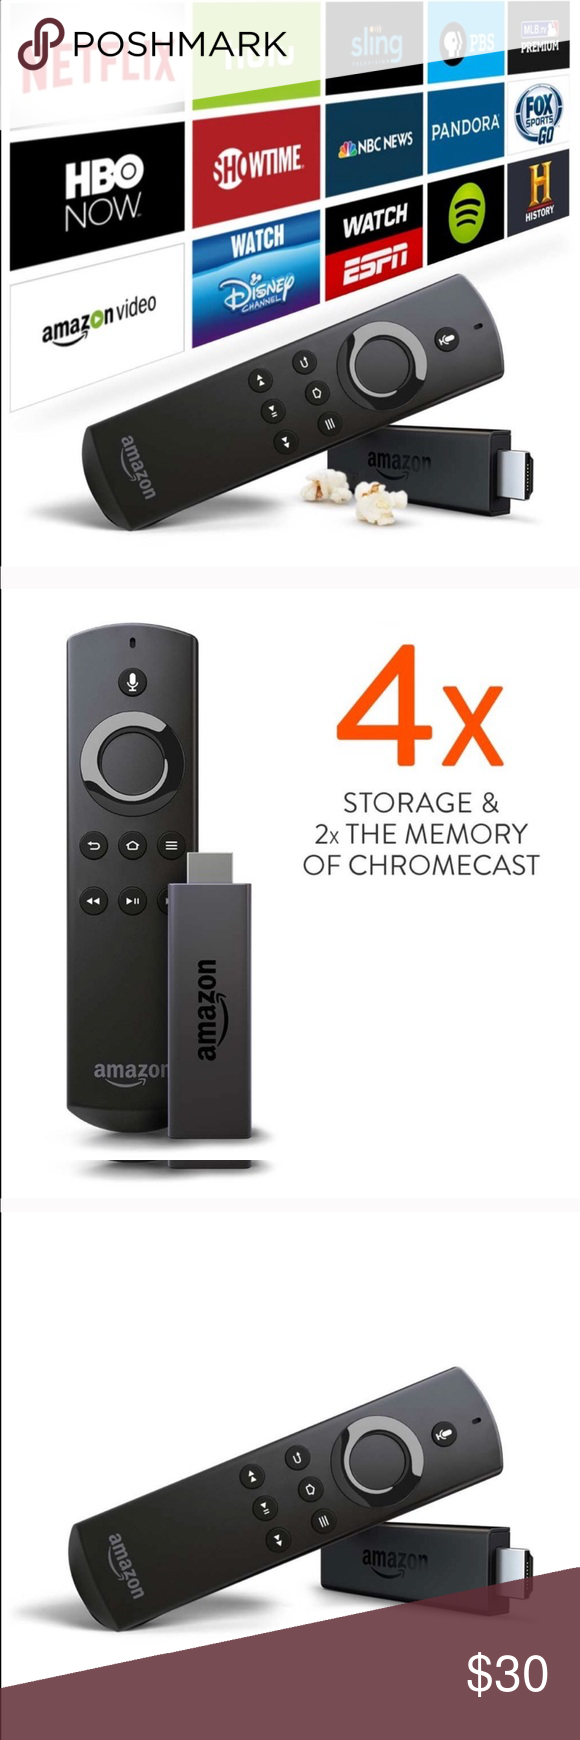 Amazon Firestick With Voice Remote 🔥 Used a couple times